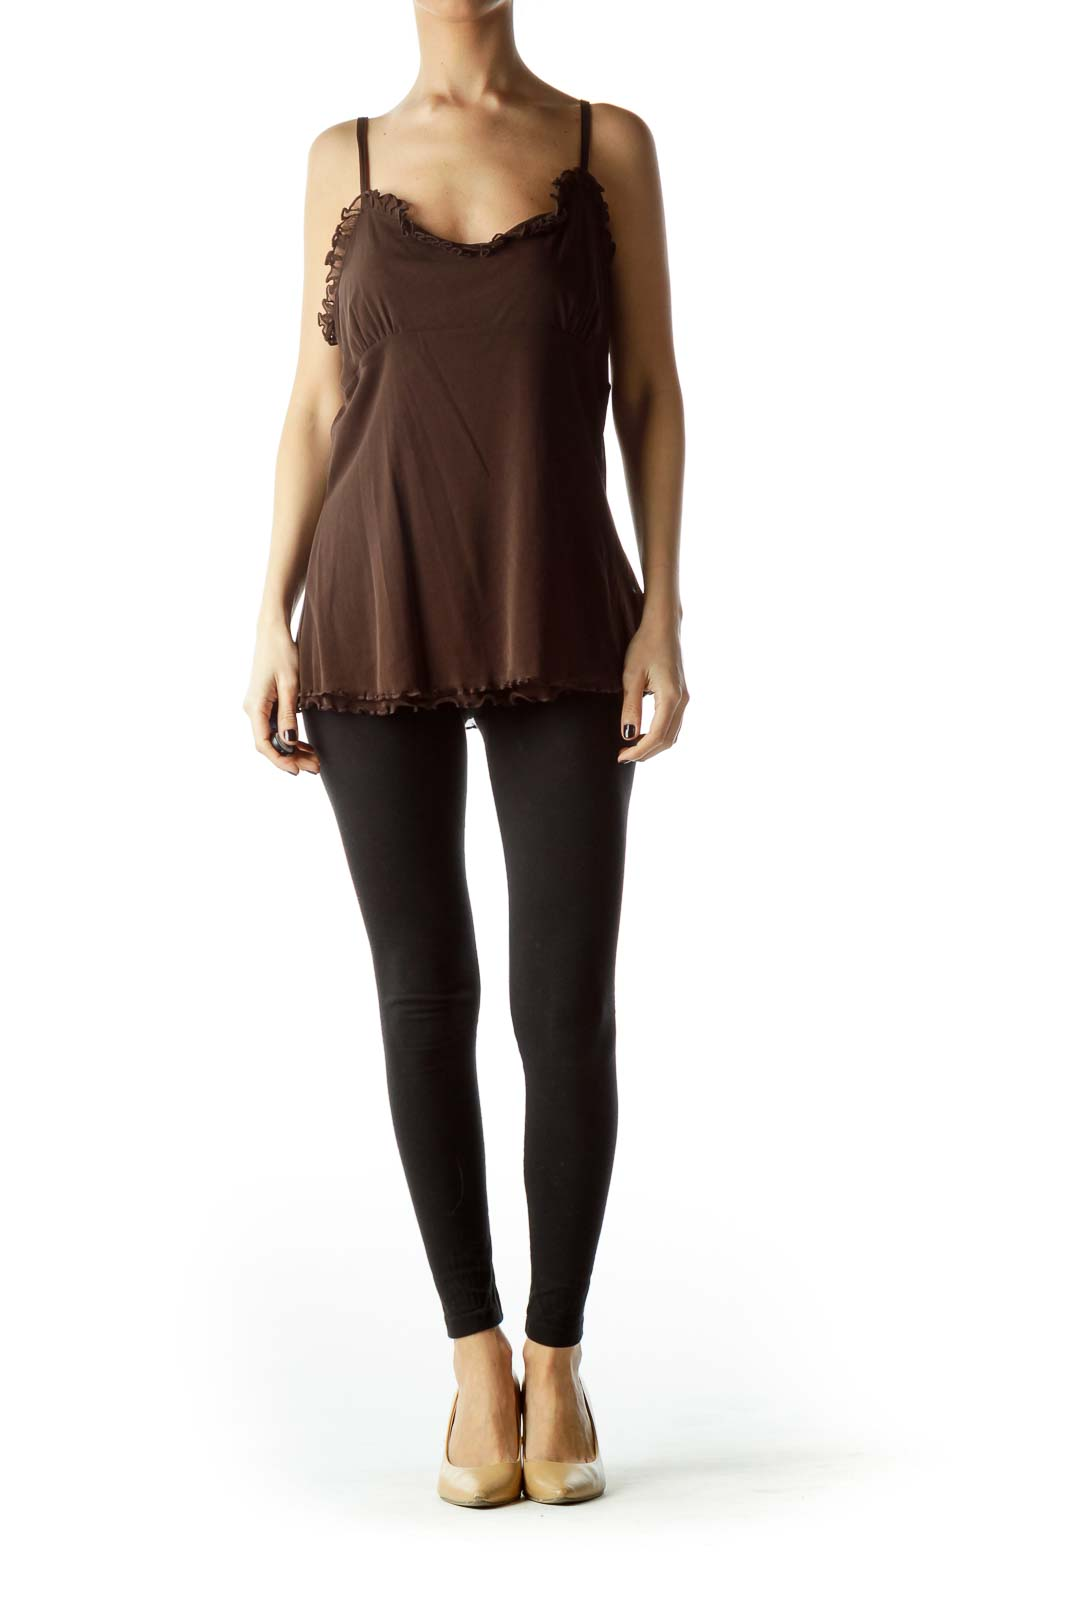 Brown Spaghetti Straps Sheer Top with Ruching